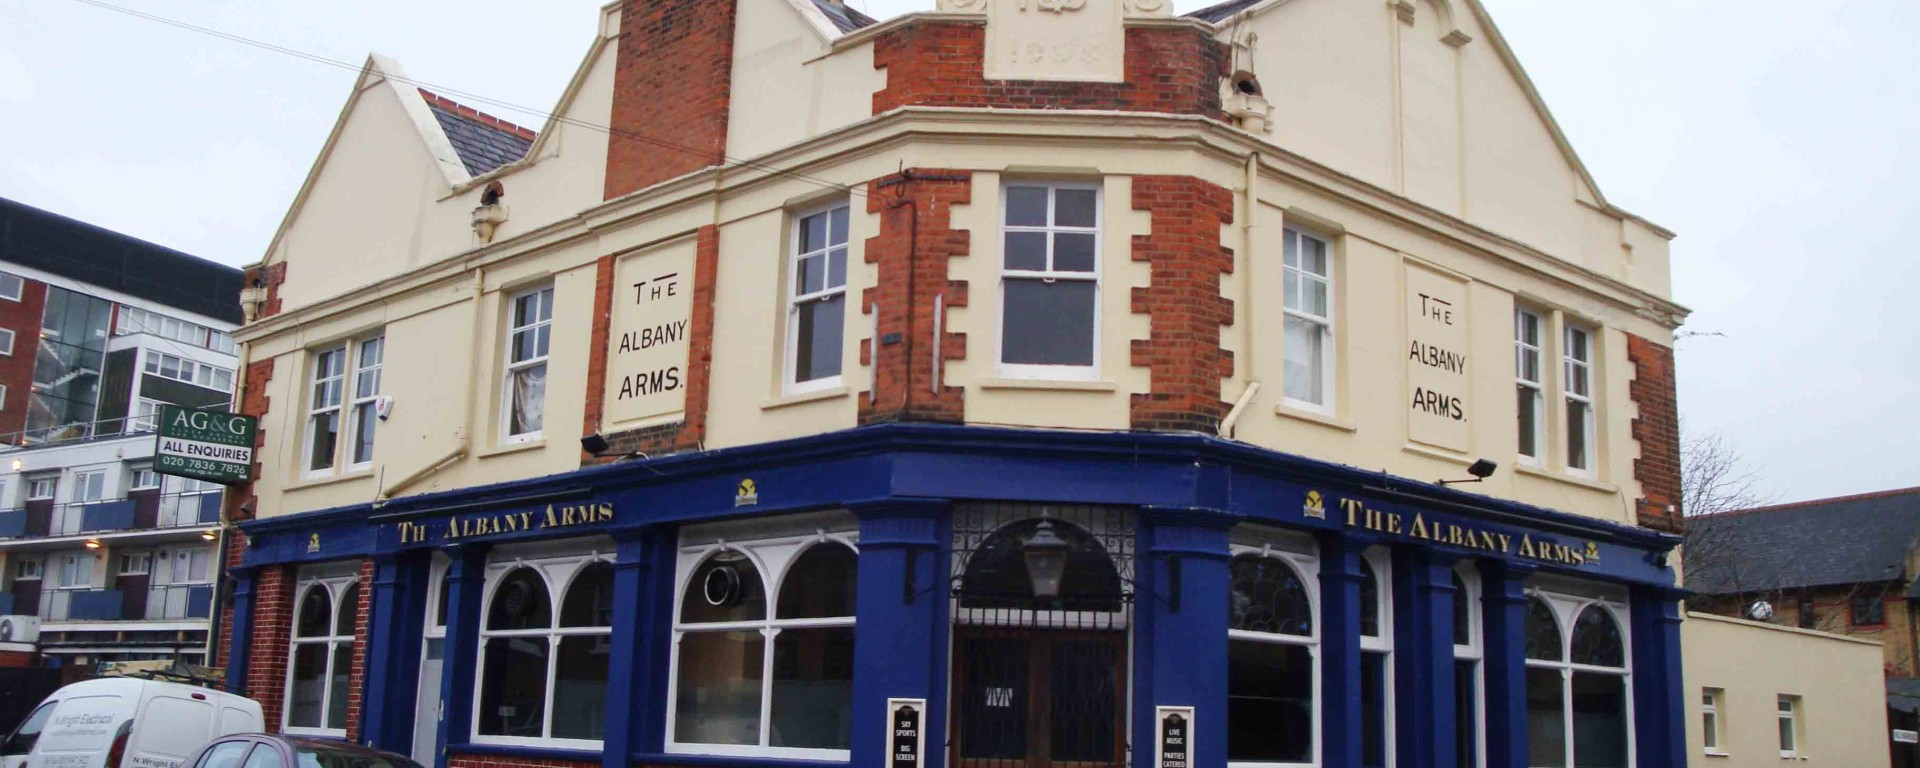 The Albany Arms